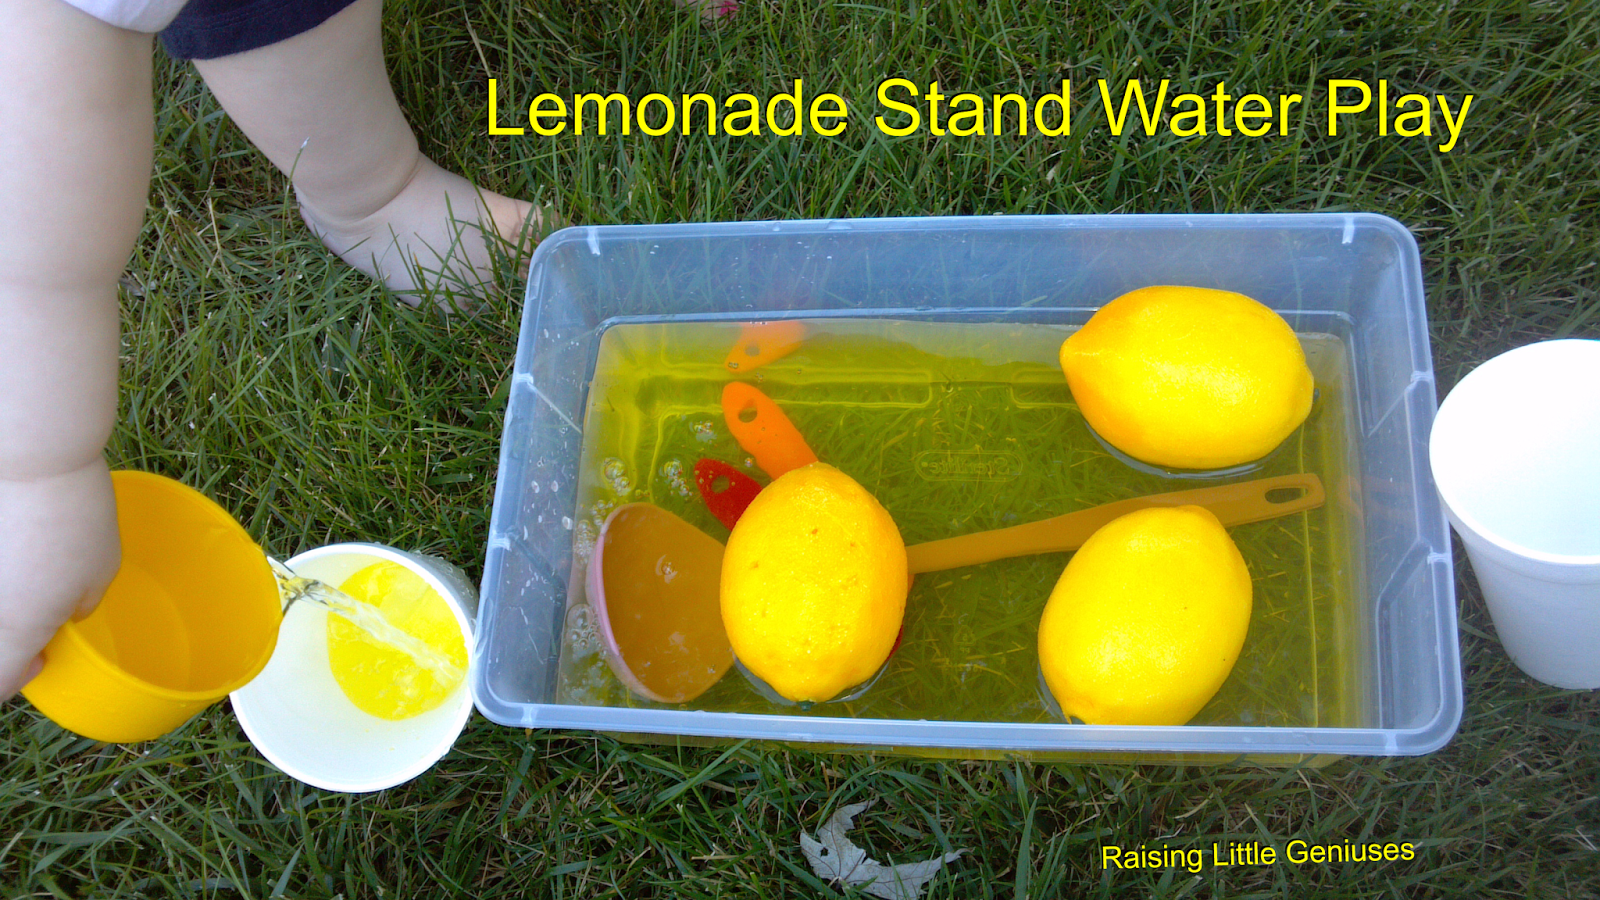 Lemonade Stand Water Play Perfect Outdoor Summer Activity